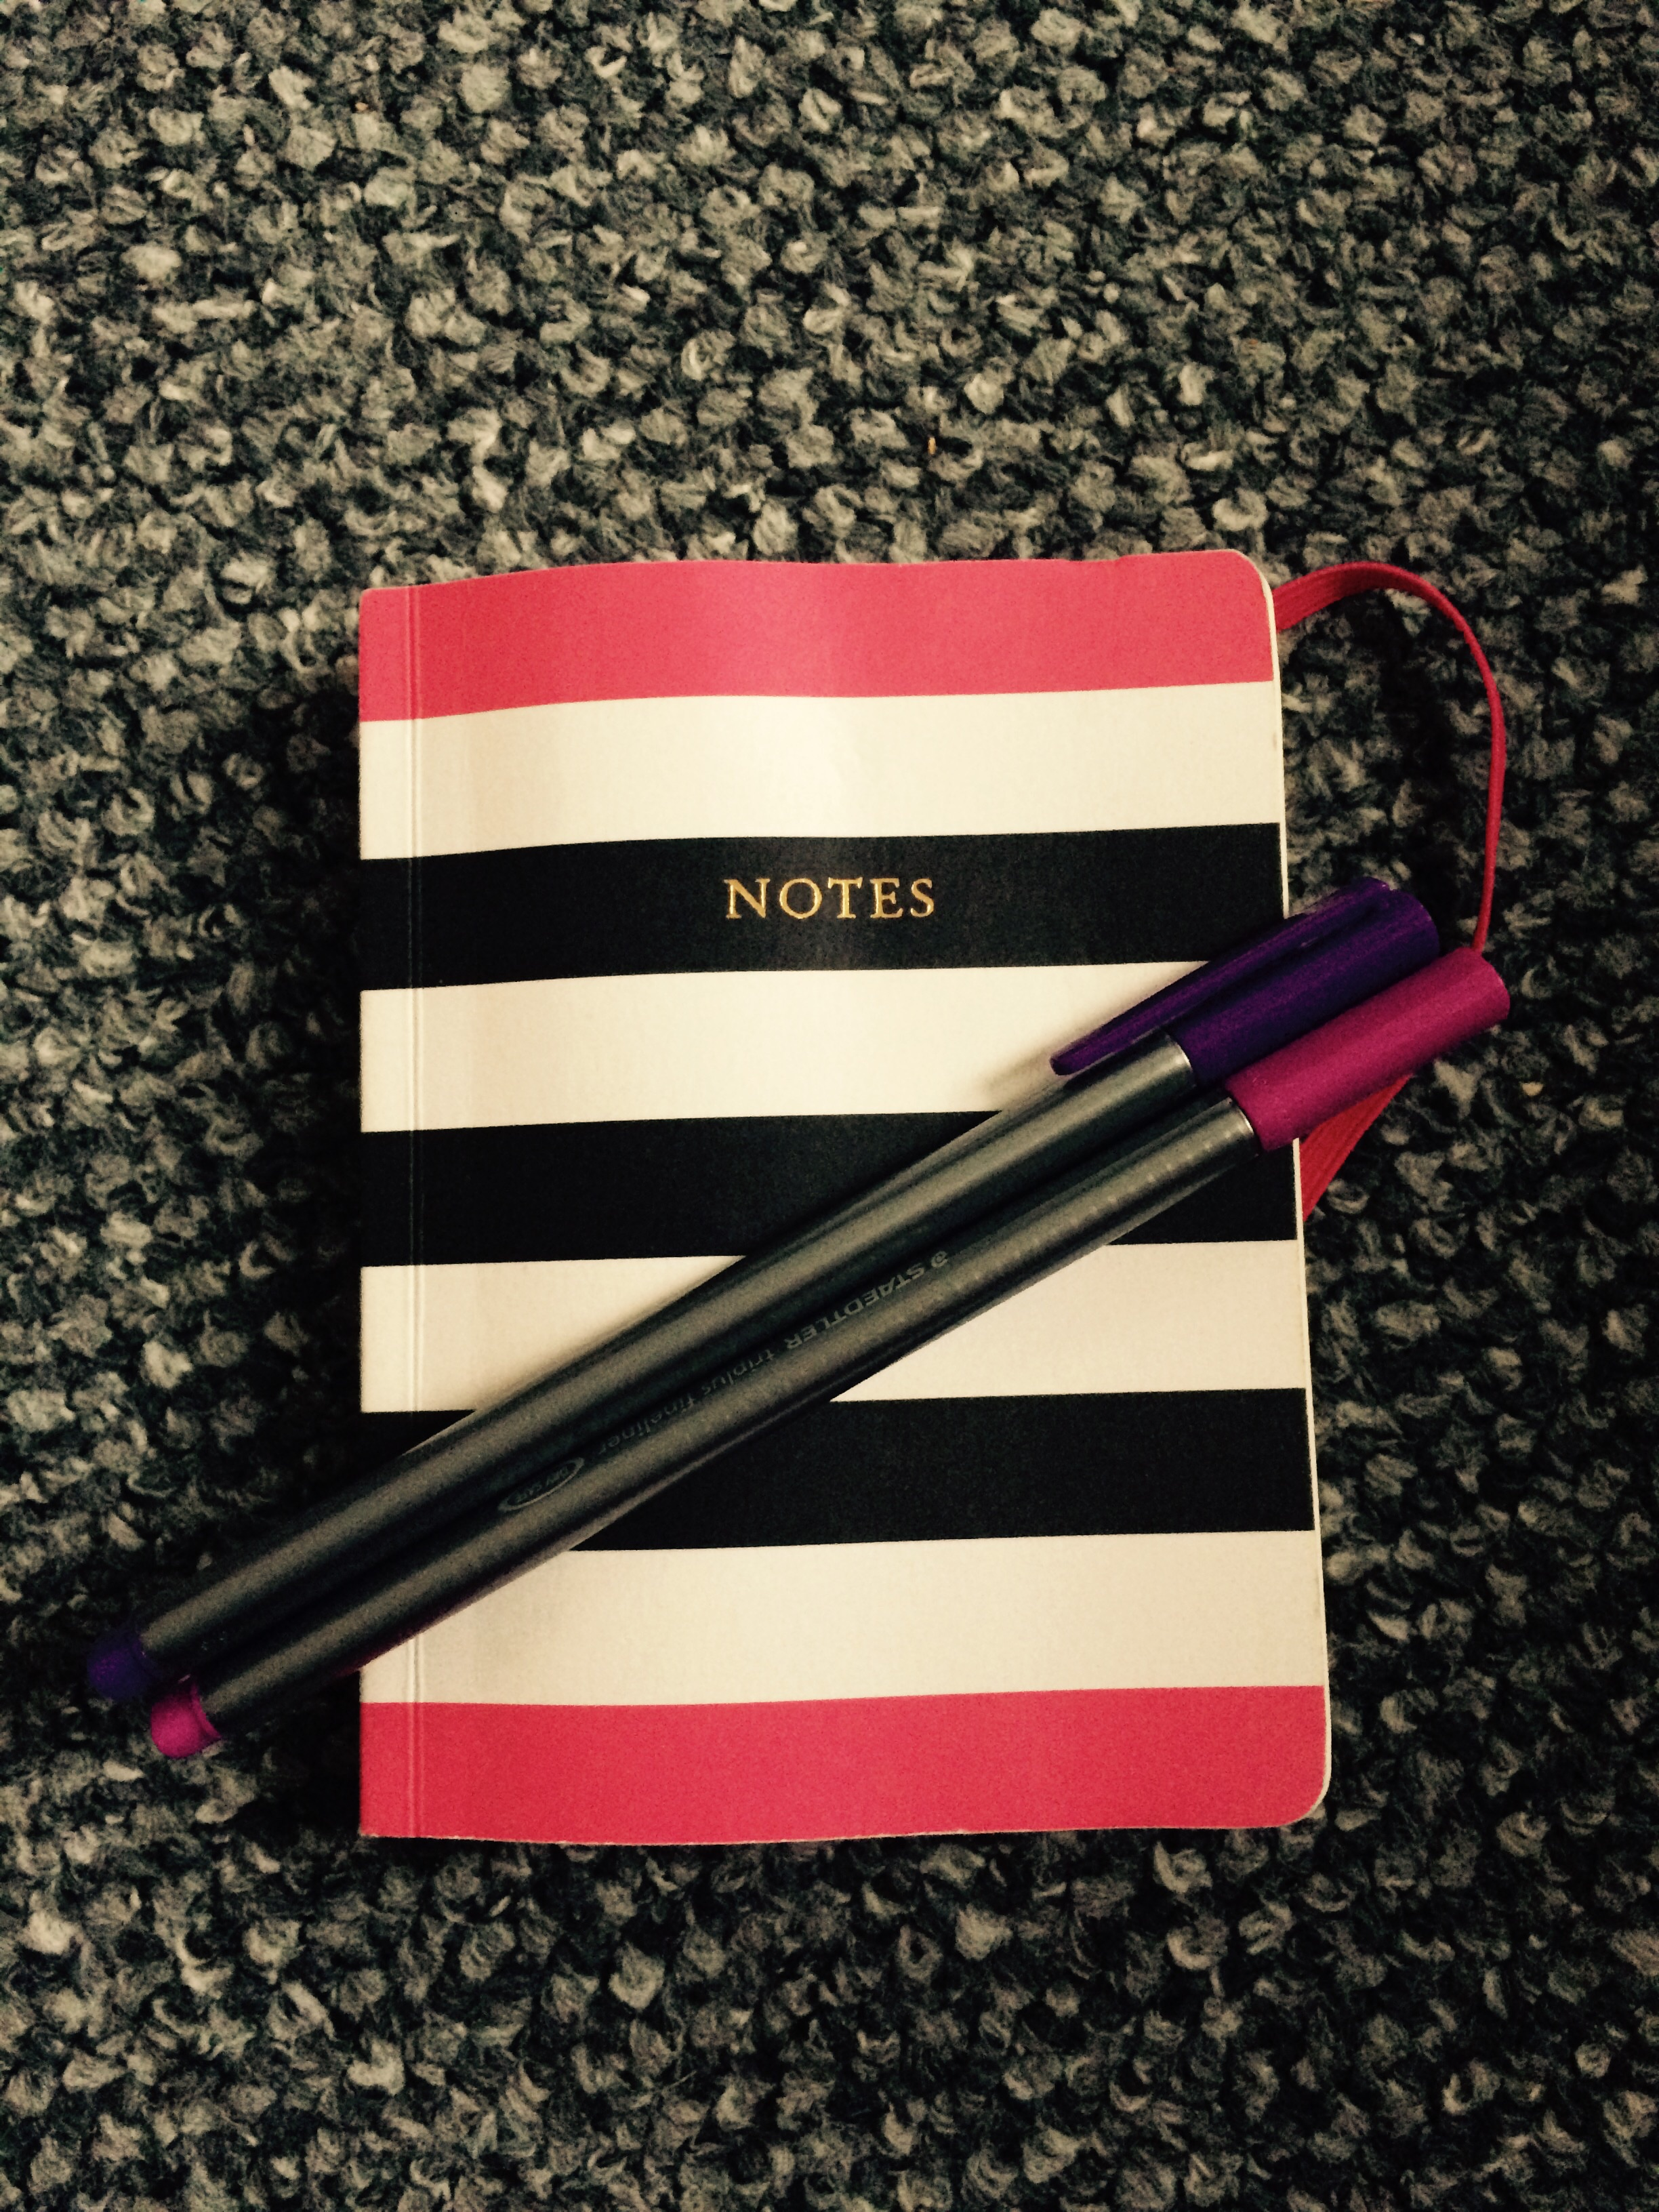 Notes and matching Staedtler pens